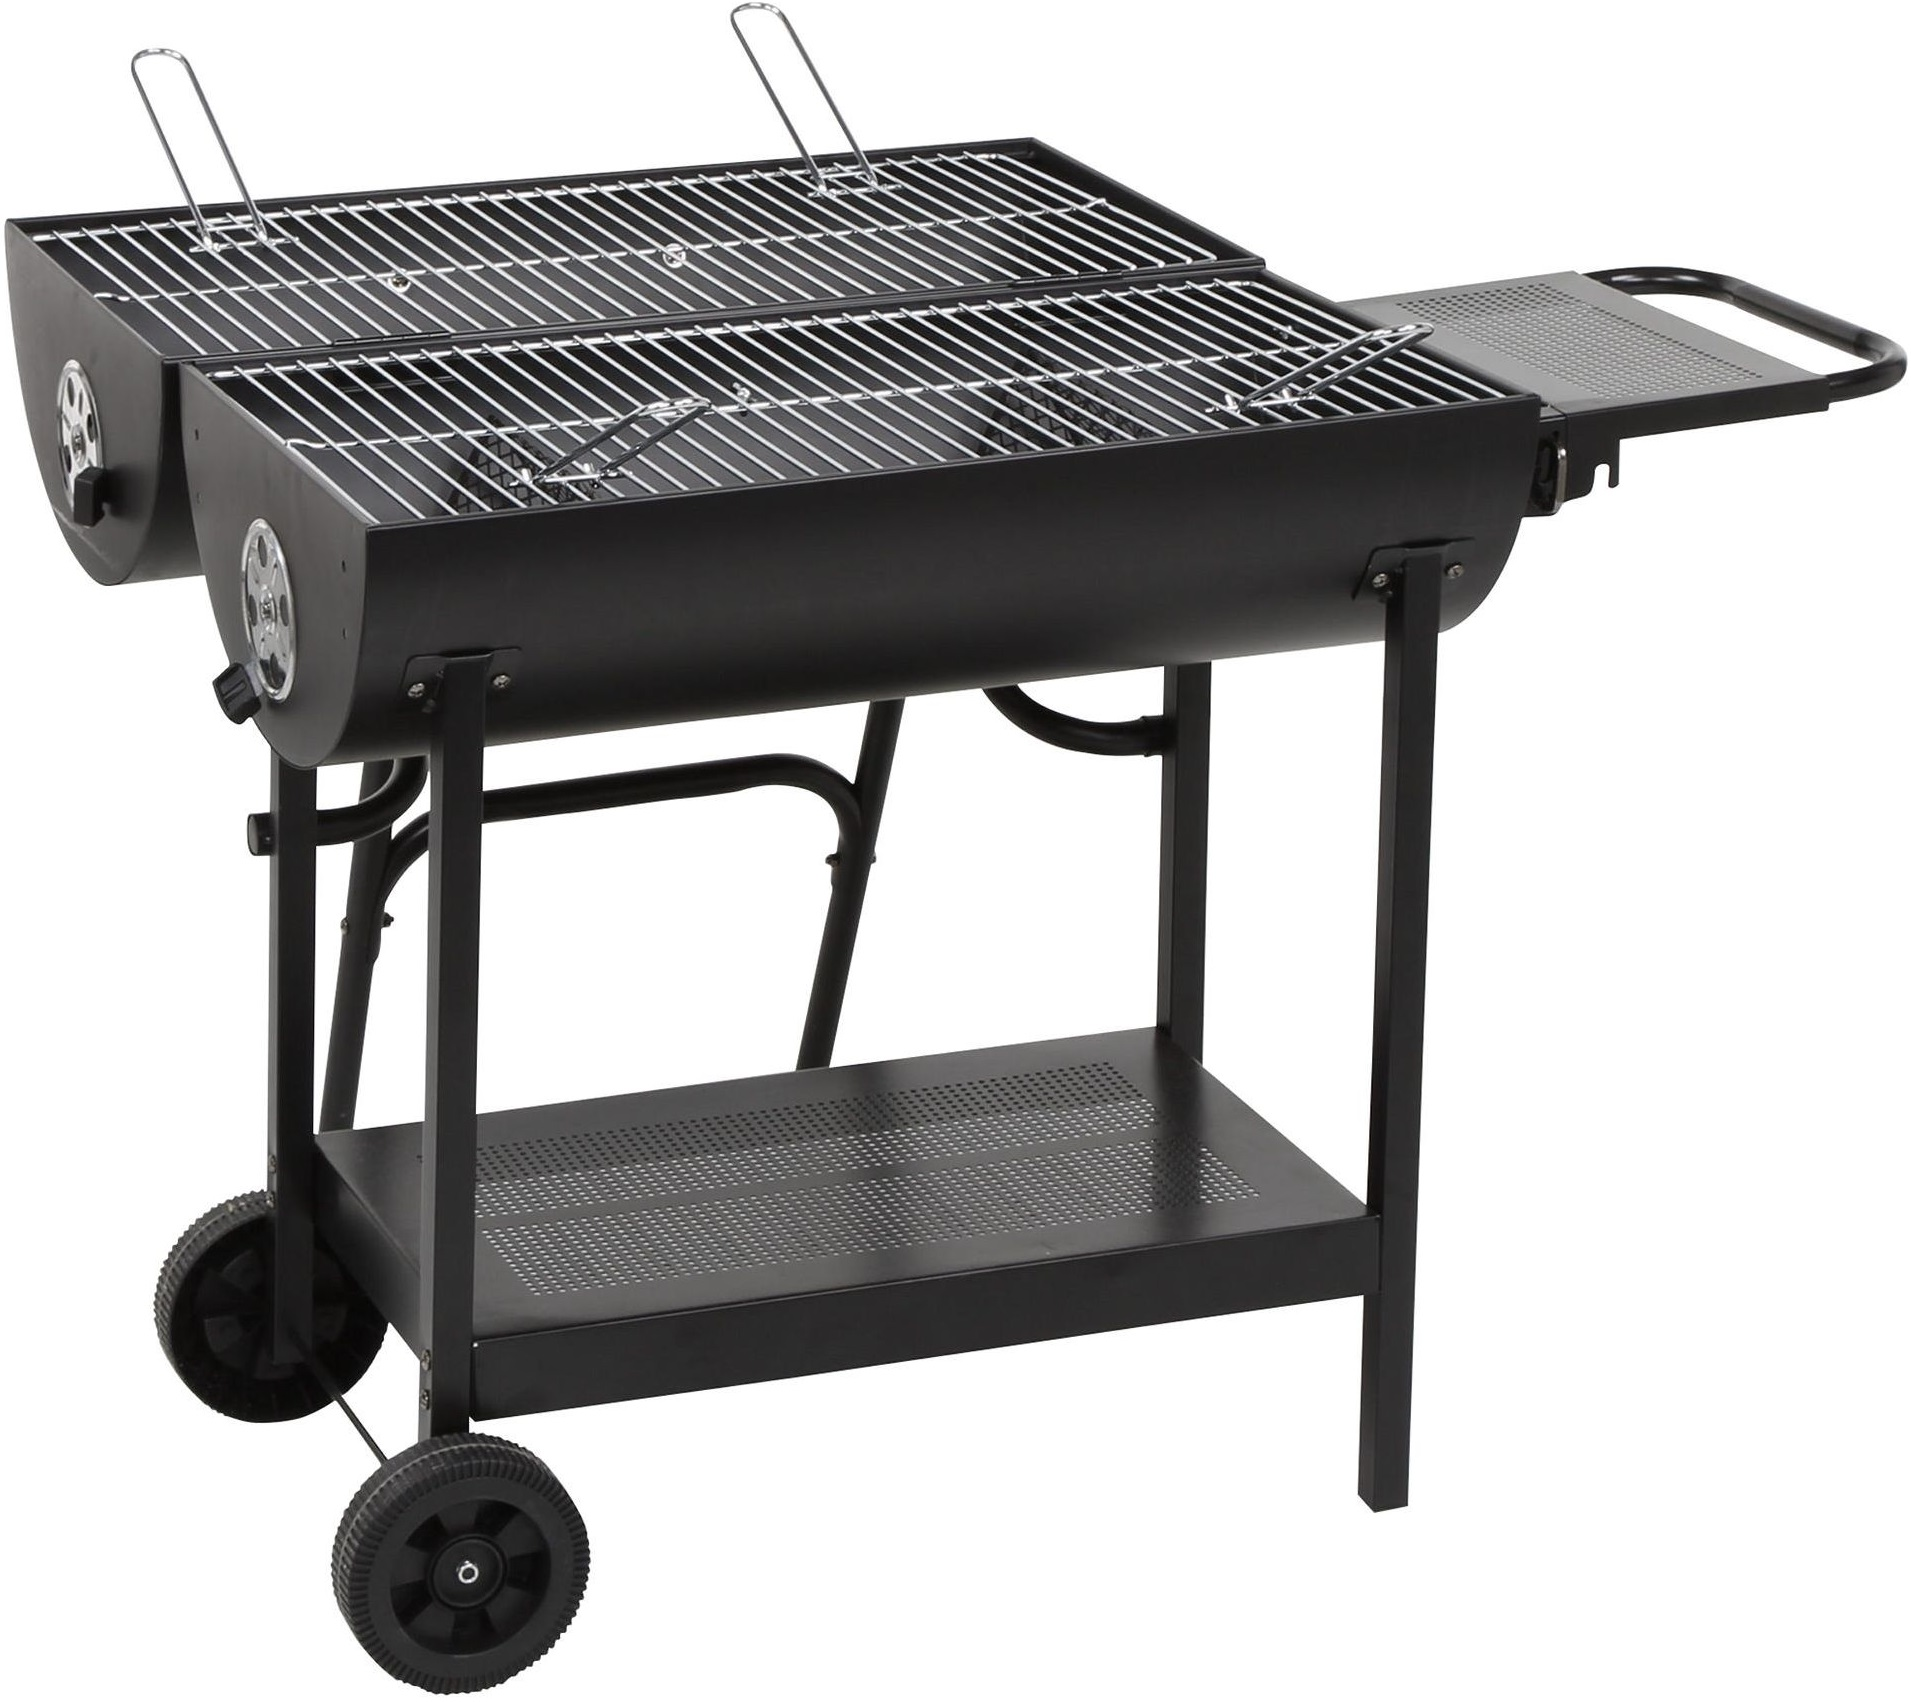 new tesco double sided oil drum bbq charcoal barbecue black